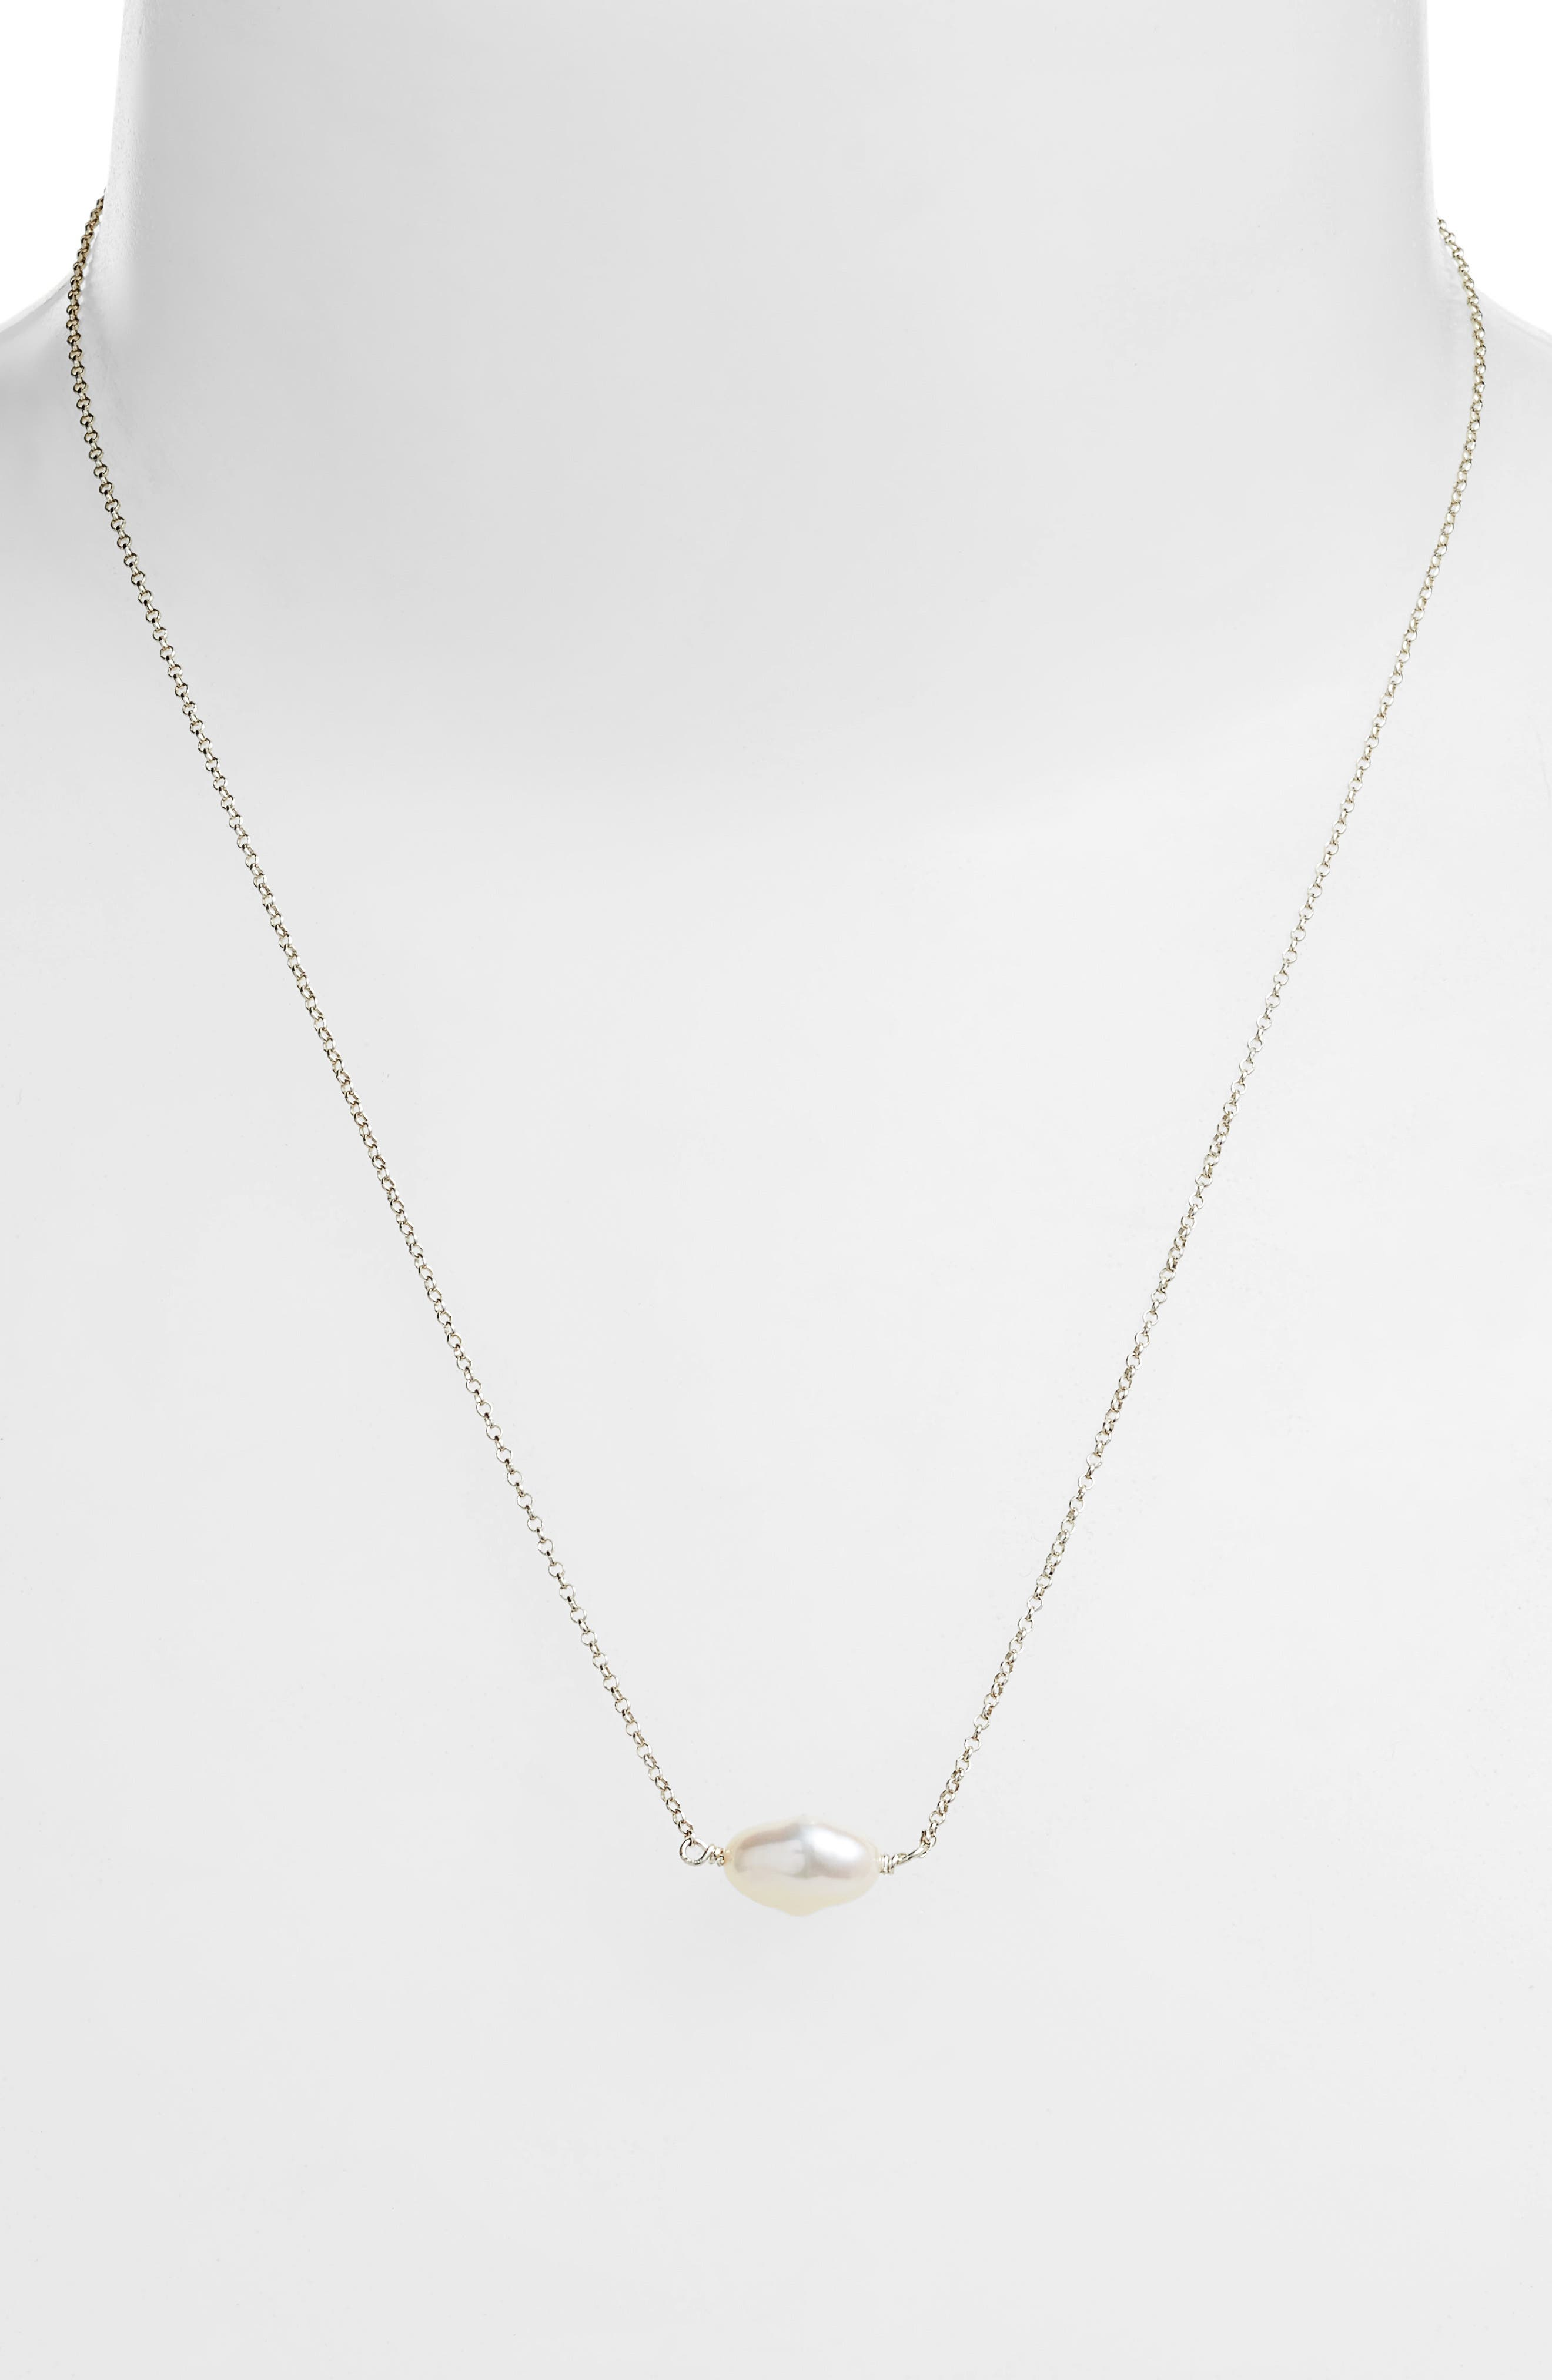 Keshi Cultured Pearl Necklace,                             Alternate thumbnail 2, color,                             042